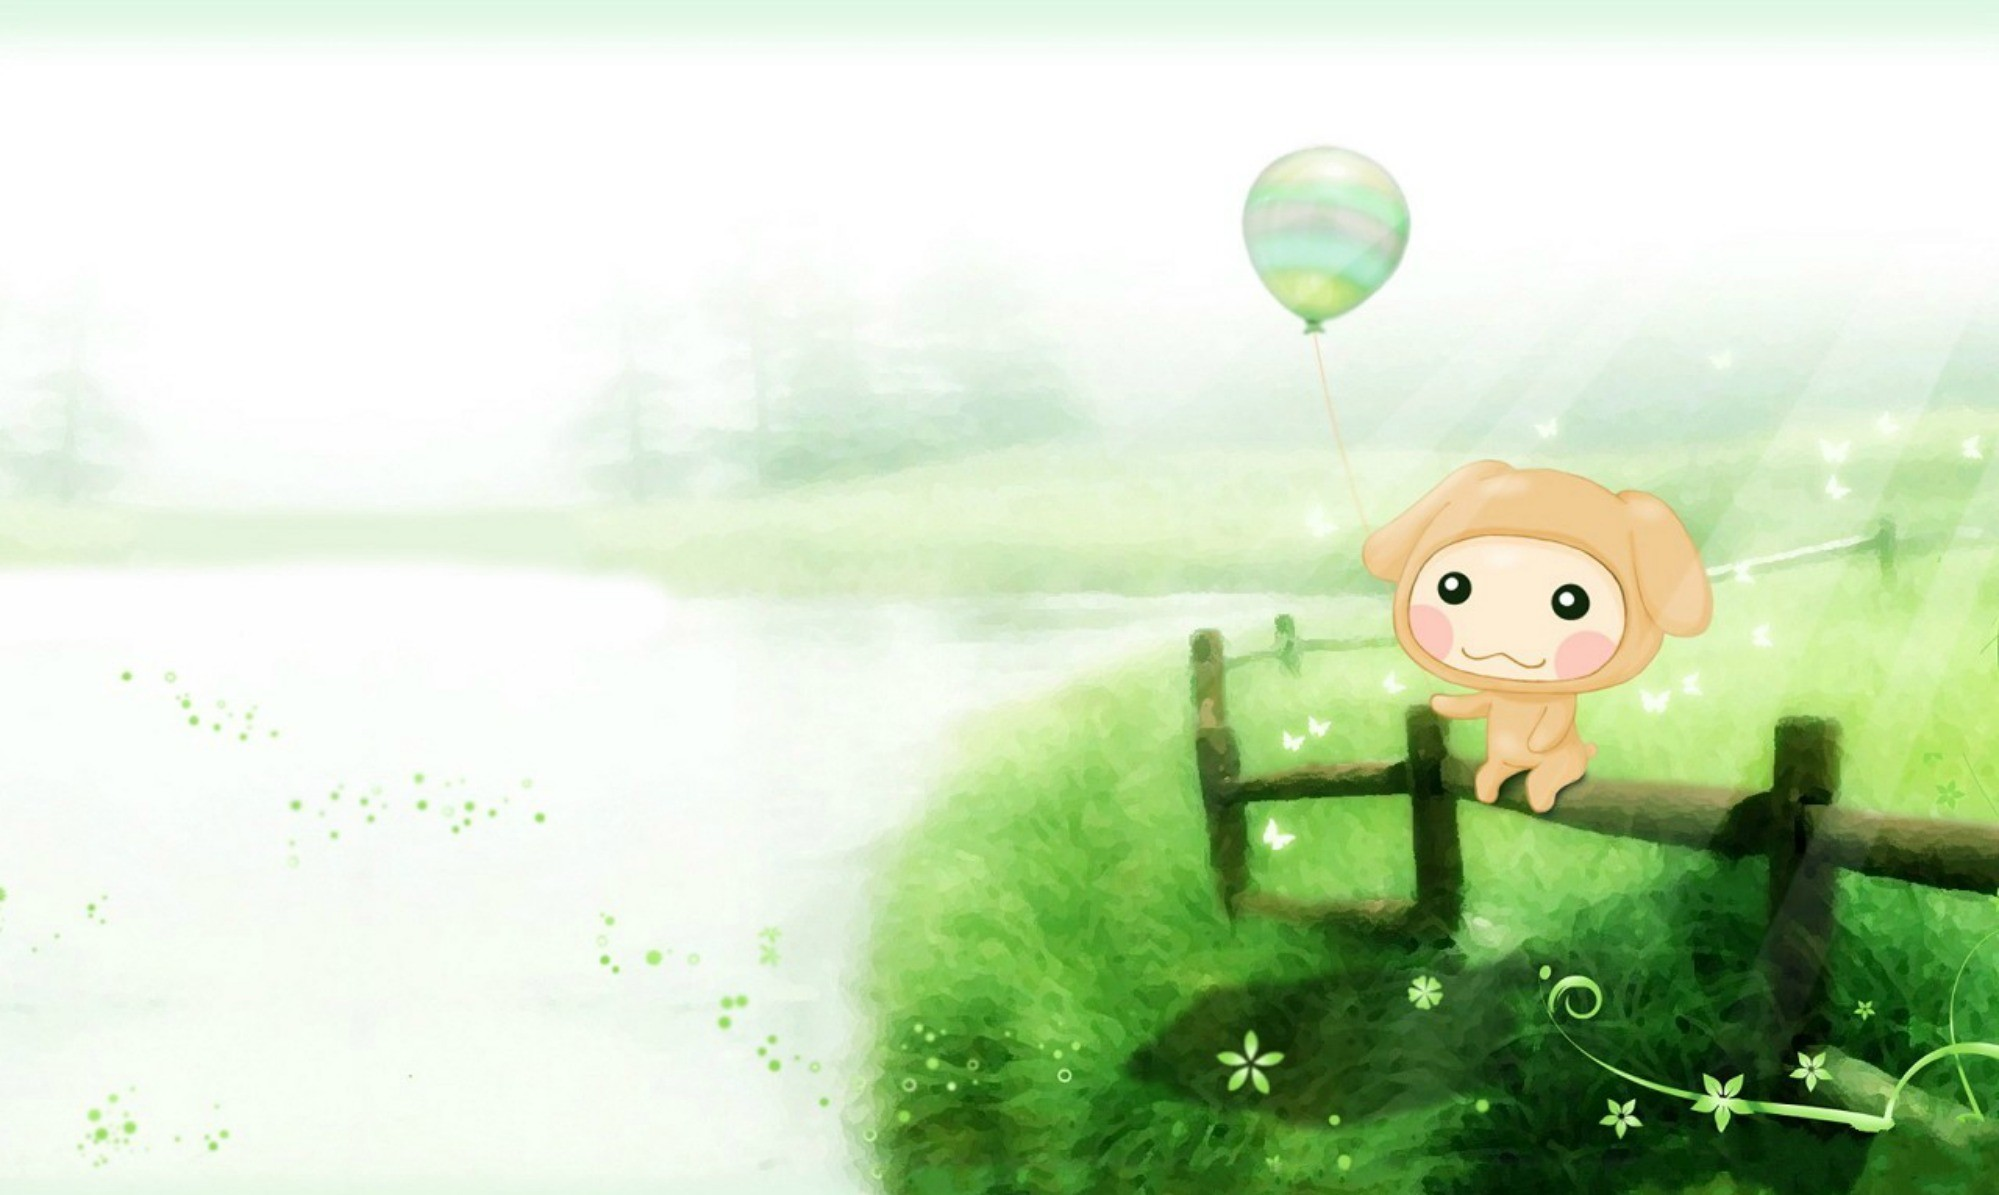 cute lil cartoon wallpaper 5566 pc en